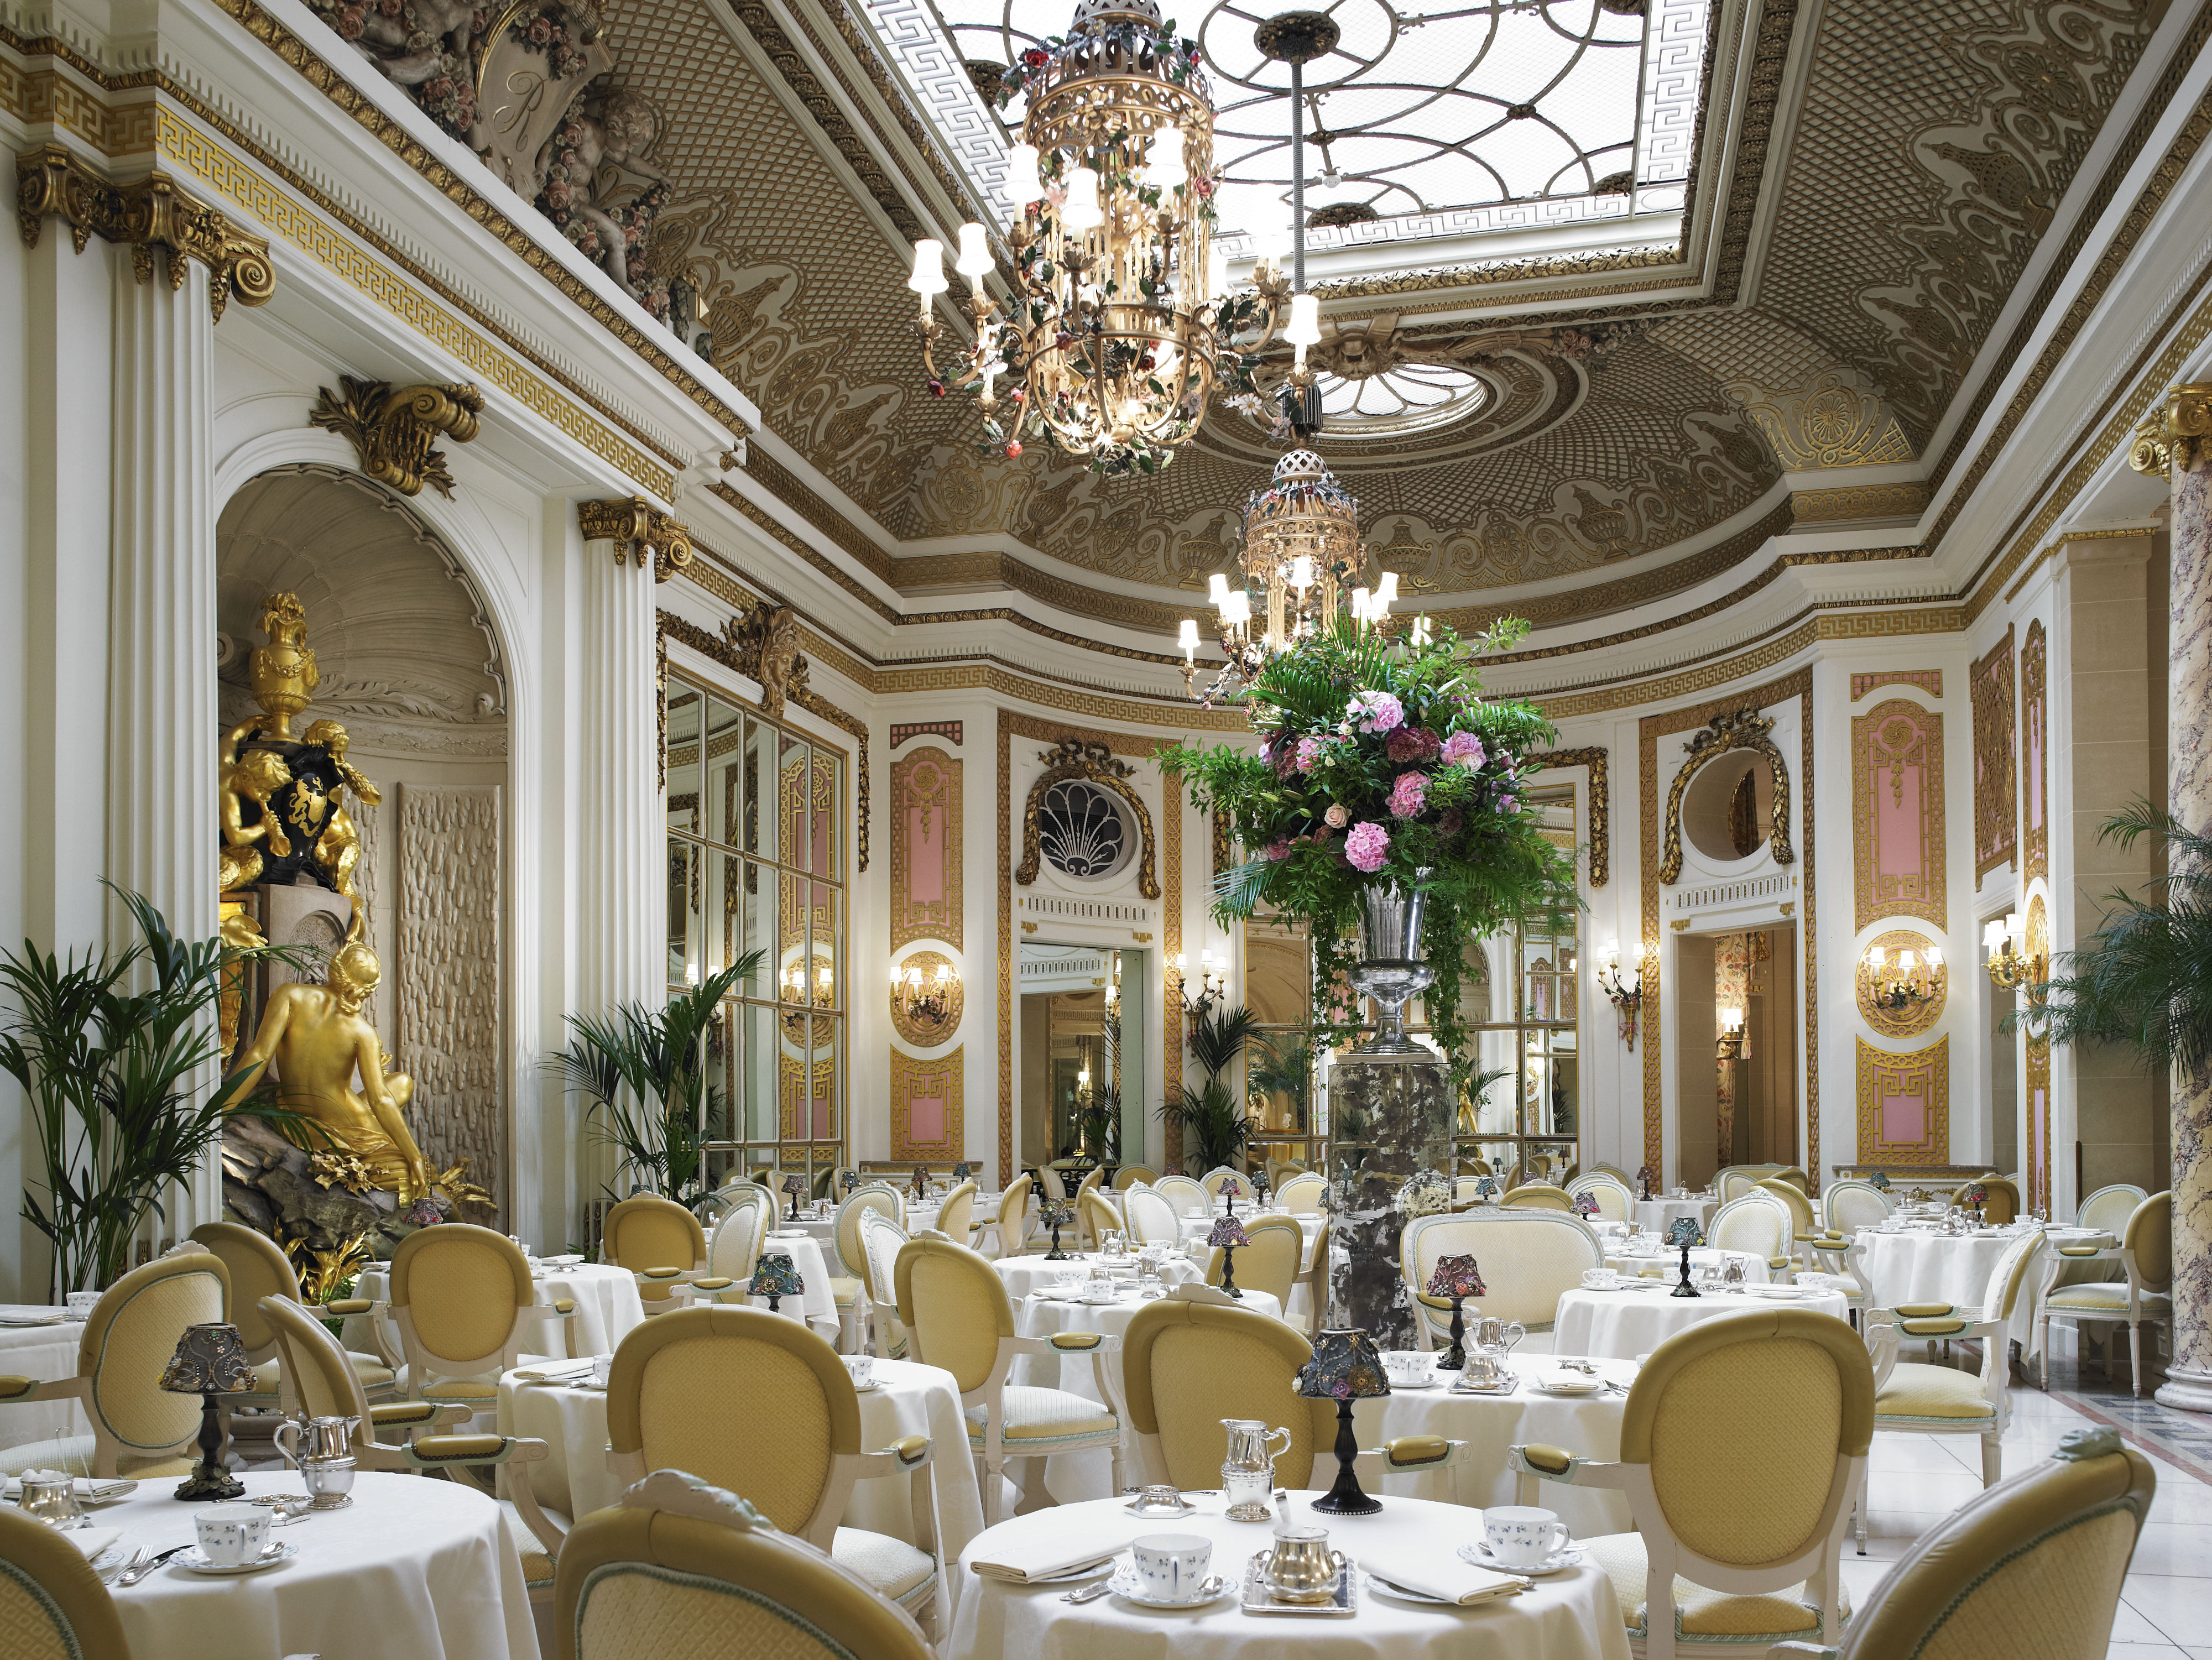 Afternoon Tea at The Ritz - London